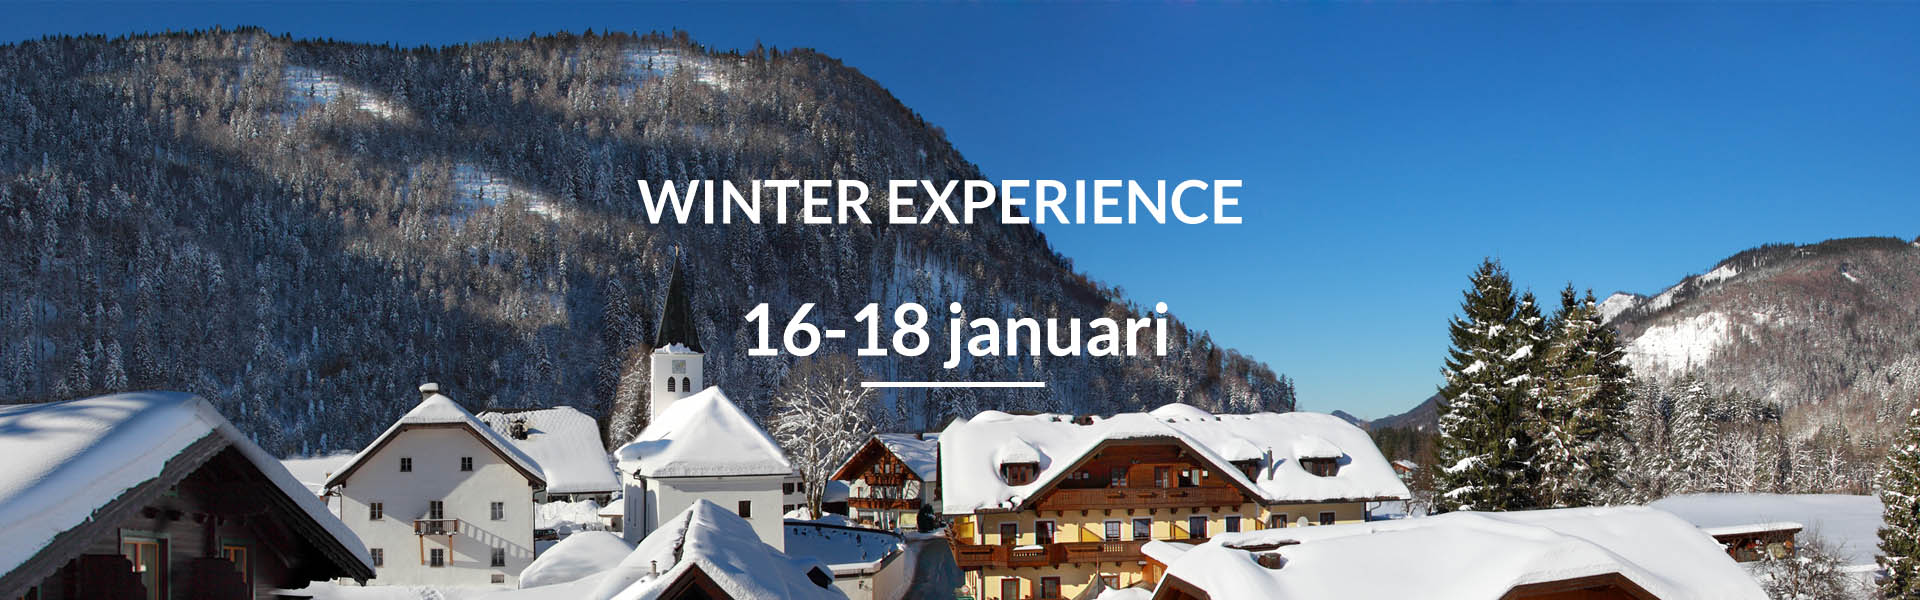 winter-experience